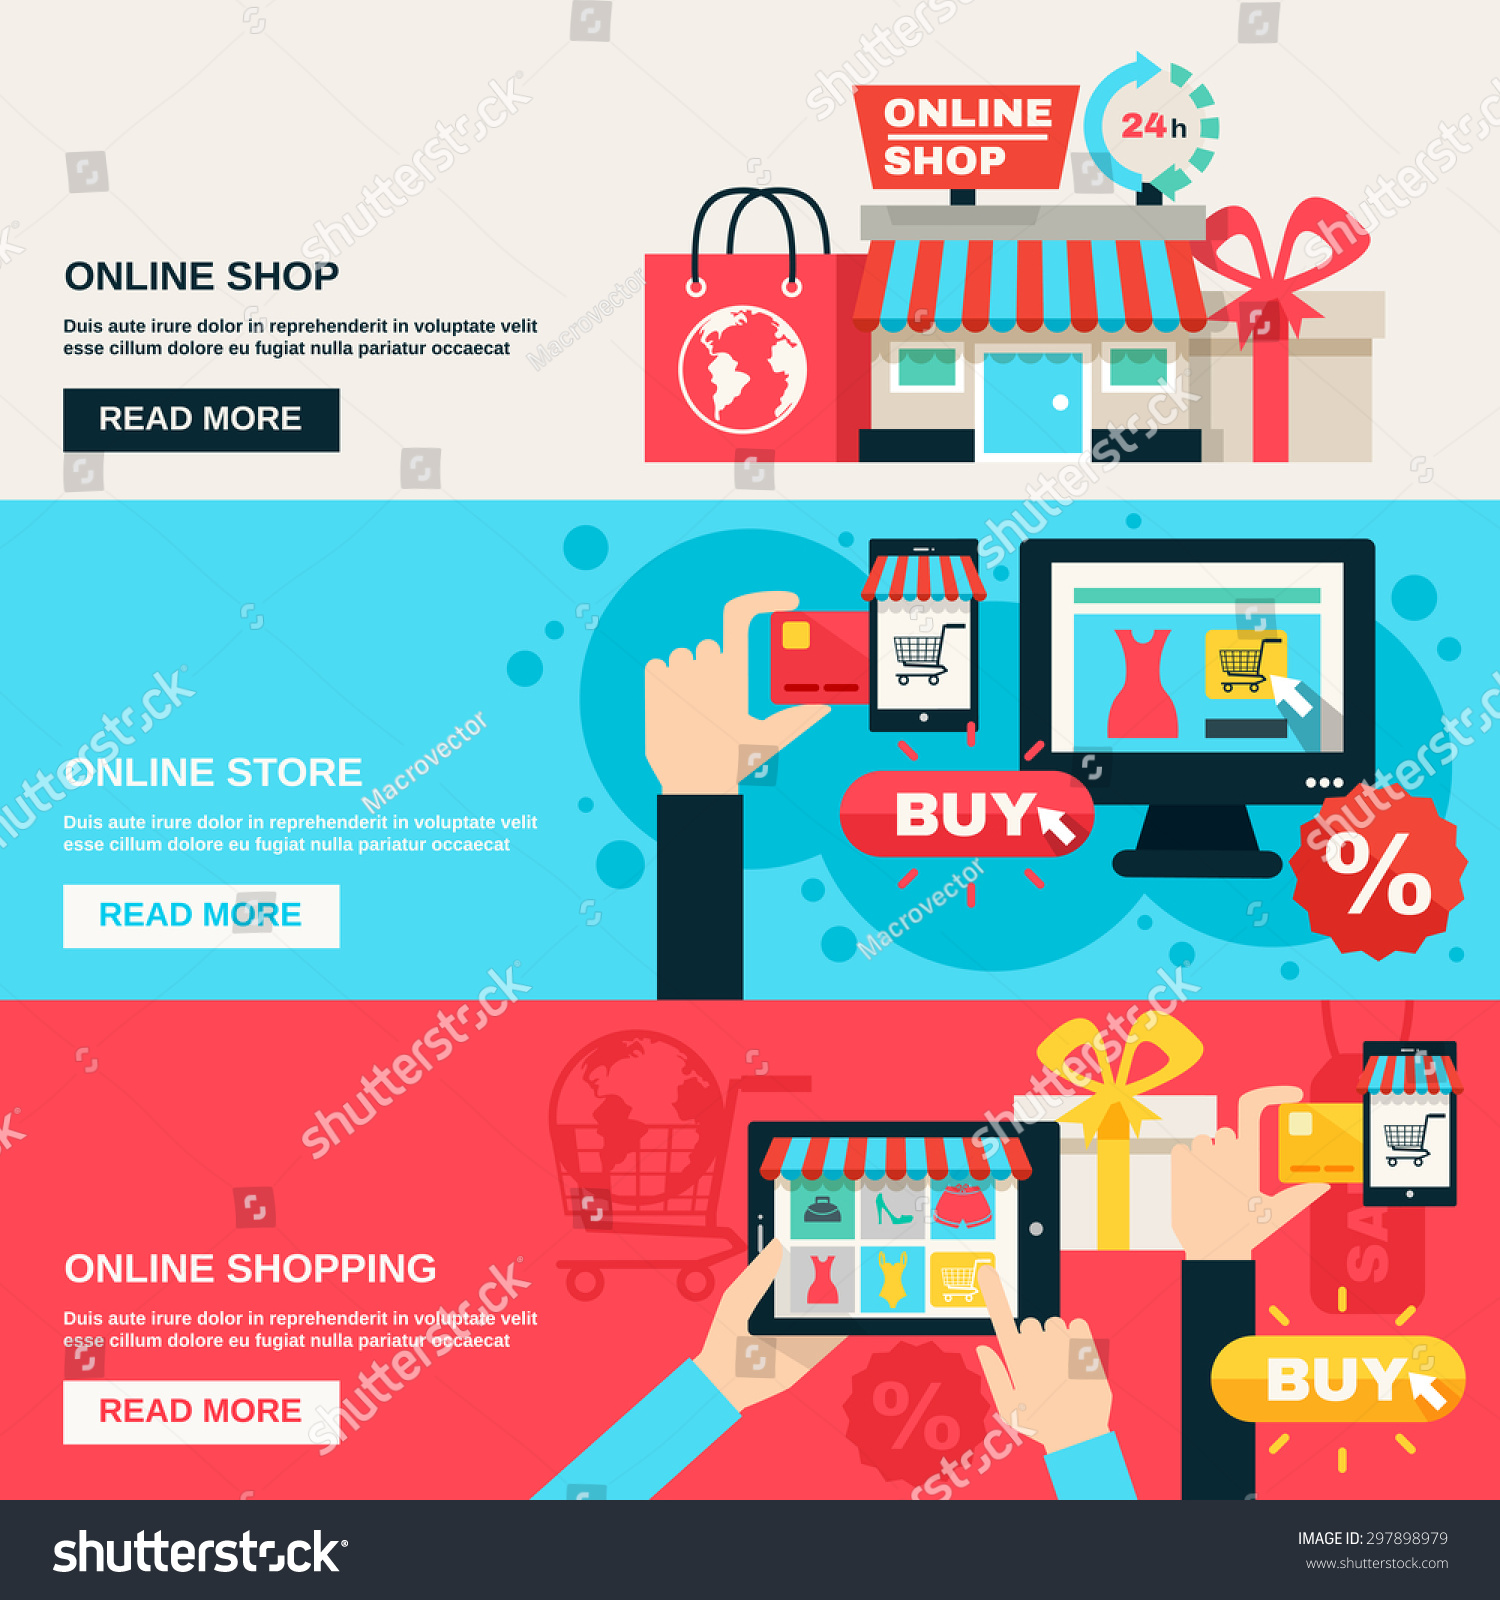 stock-vector-internet-shopping-web-market-and-online-store-flat-color-horizontal-banner-set-isolated-vector-297898979.jpg